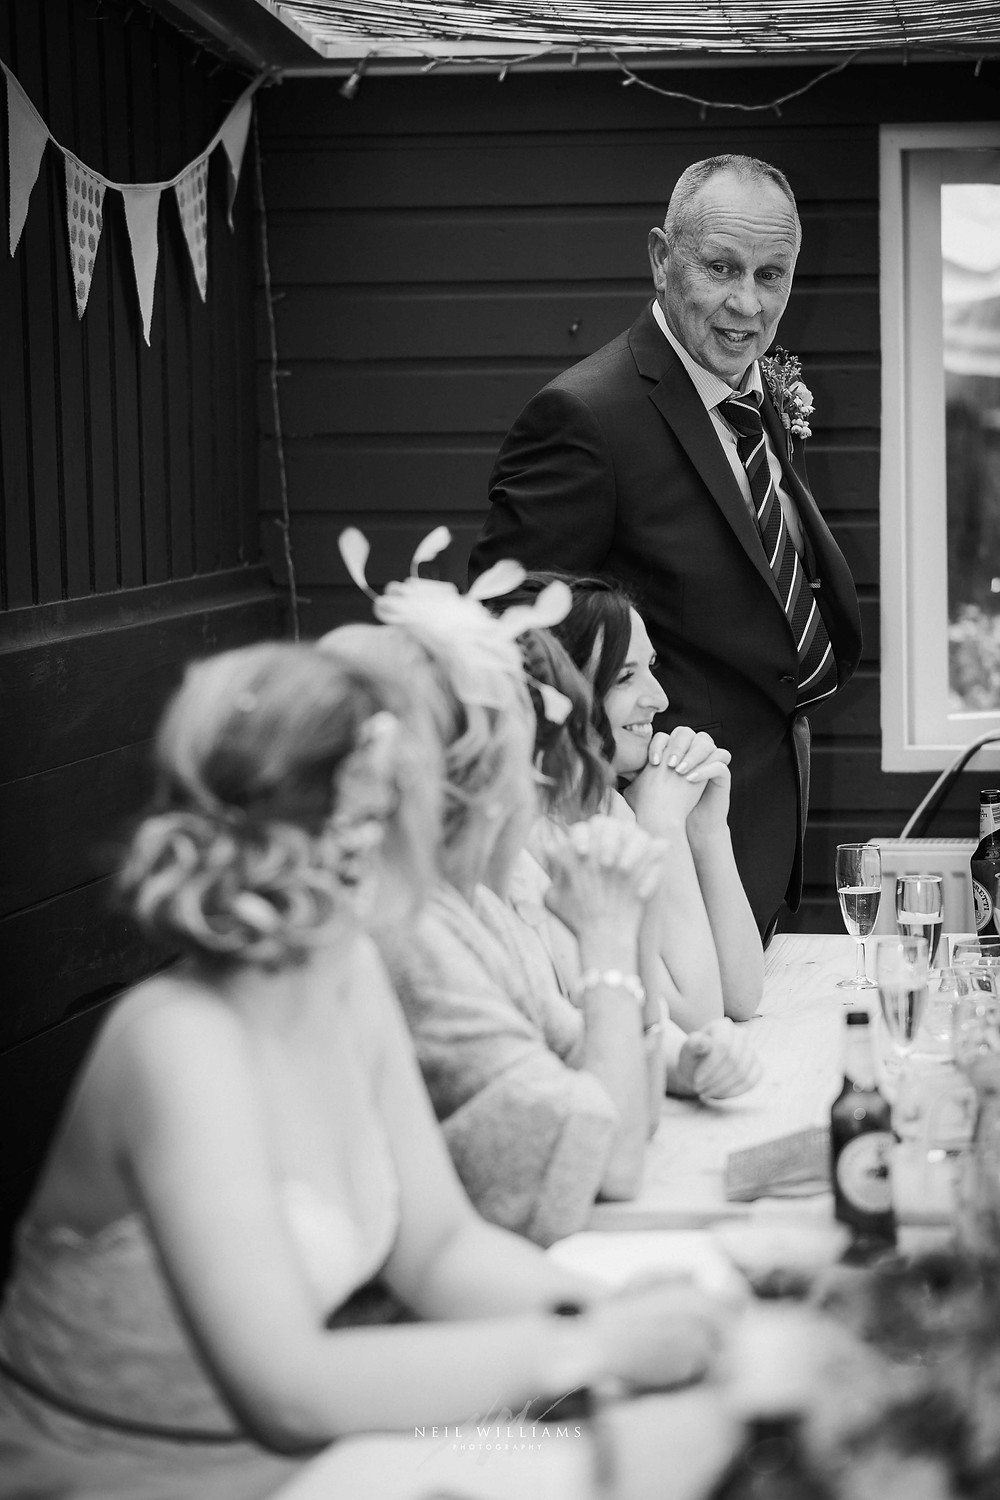 pembrokeshire, wedding, photography, neil, williams, south wales photographer, cardiff, swansea, carmarthen, bristol, cotswolds, llys meddyg, rustic, alternative, boho, speeches